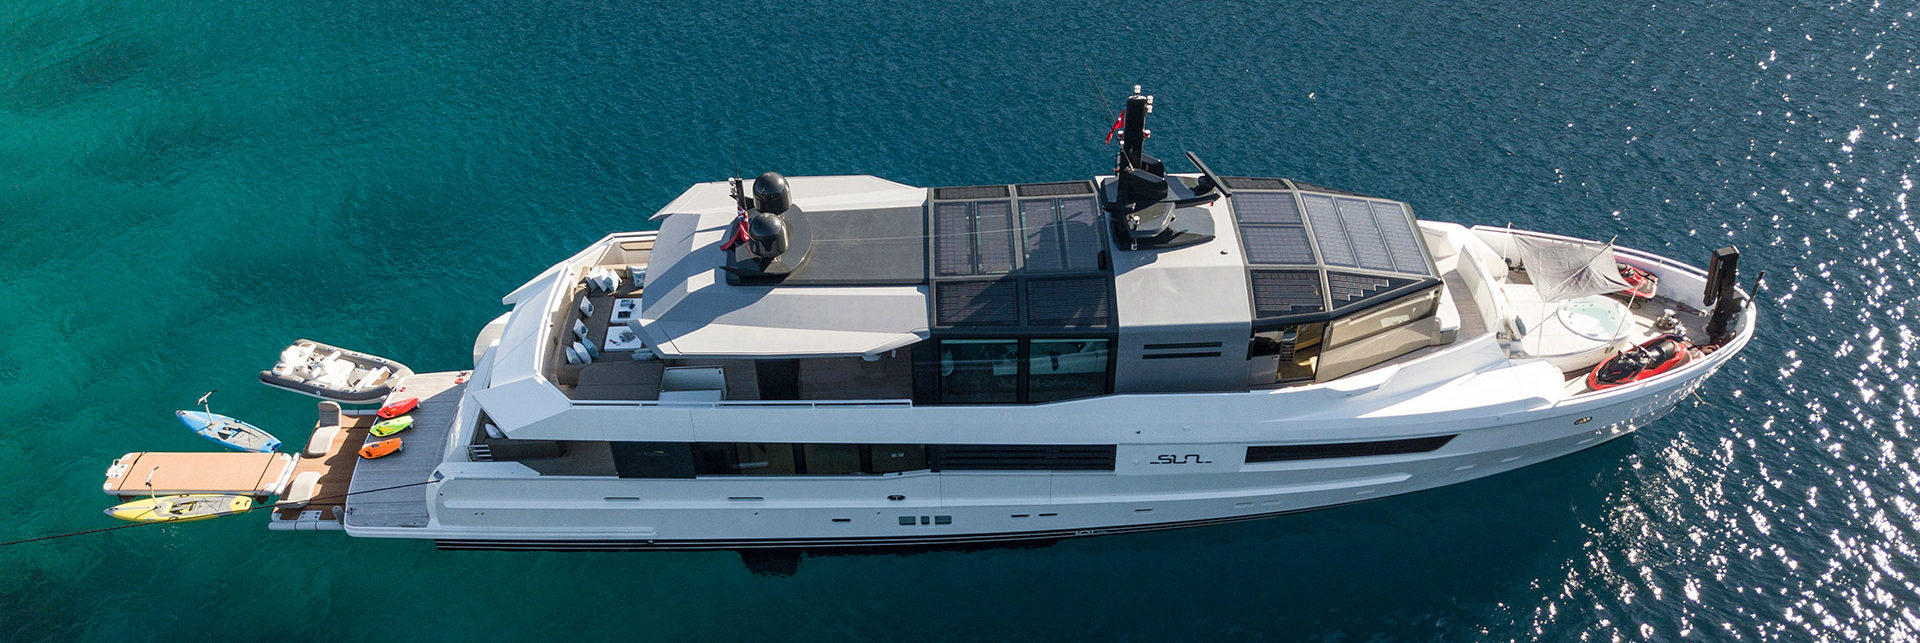 Arcadia Yachts for Sale